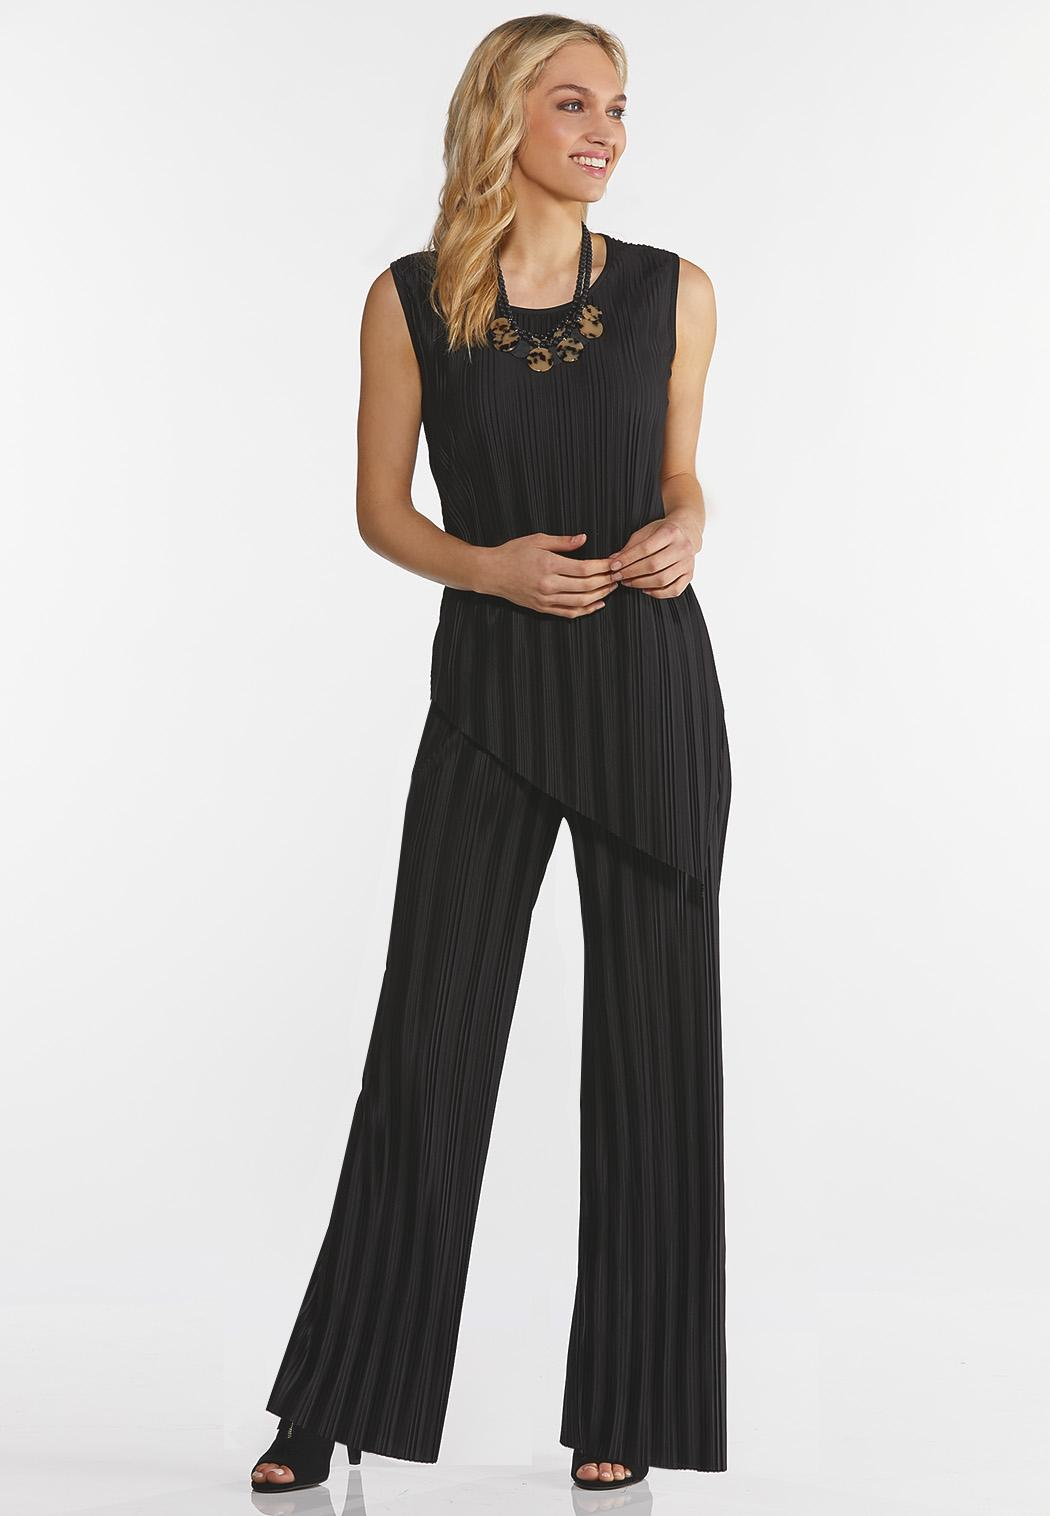 Black Pleated Pant Set